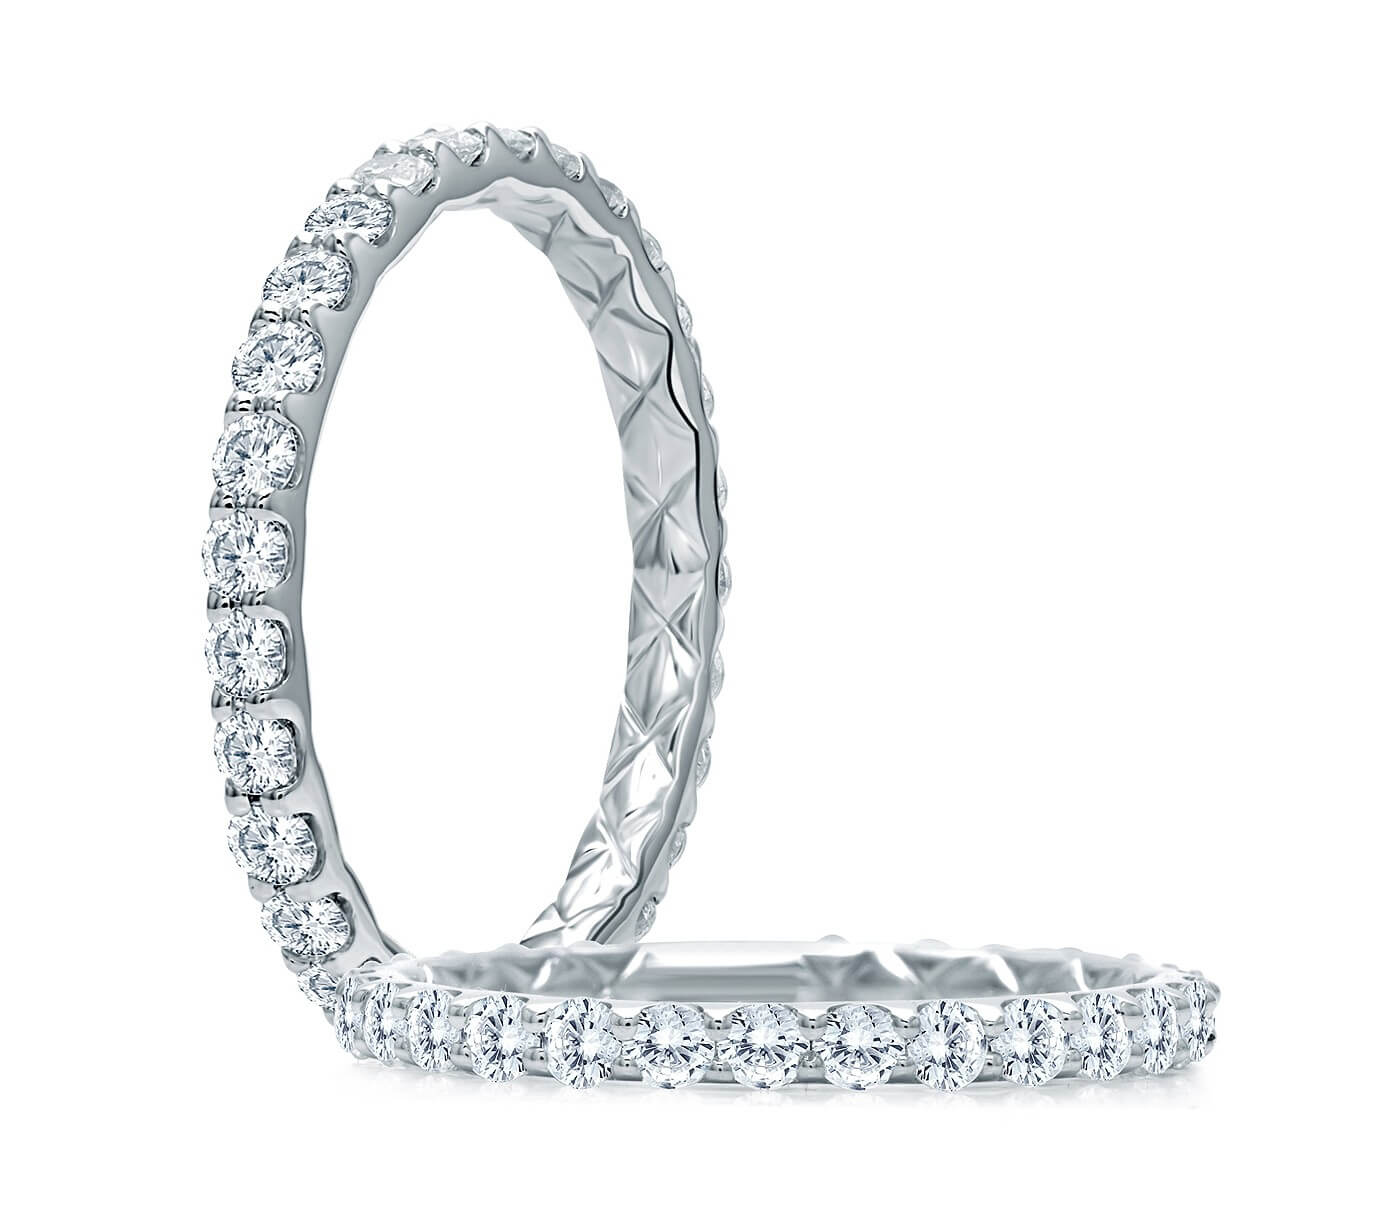 A.Jaffe eternity band